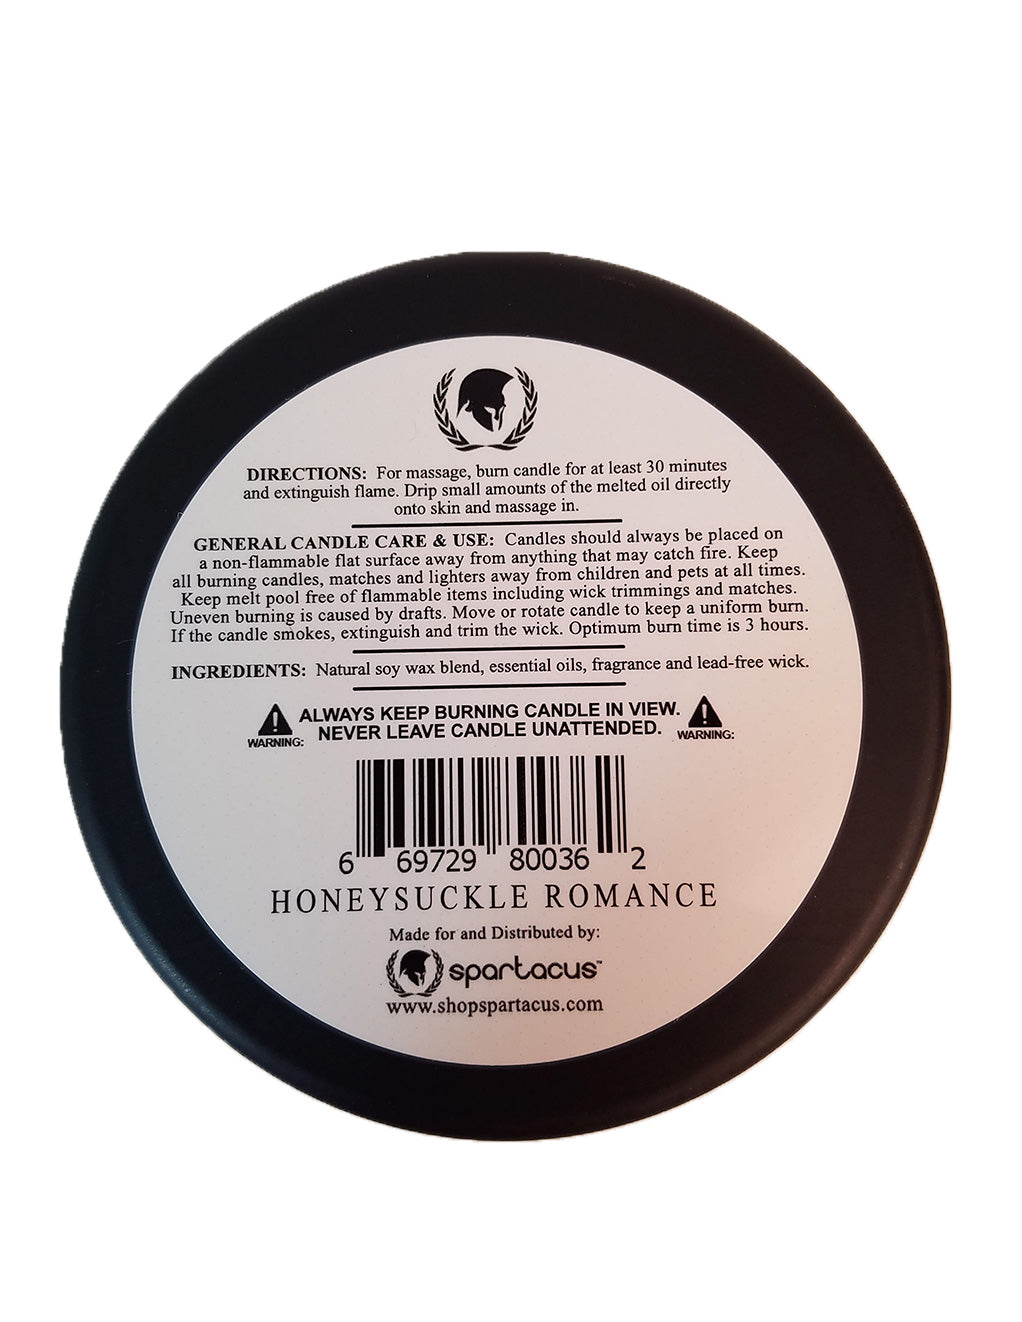 Spartacus Sensual Massage Candle Honeysuckle Romance - General Merchandise - Candles/Aroma